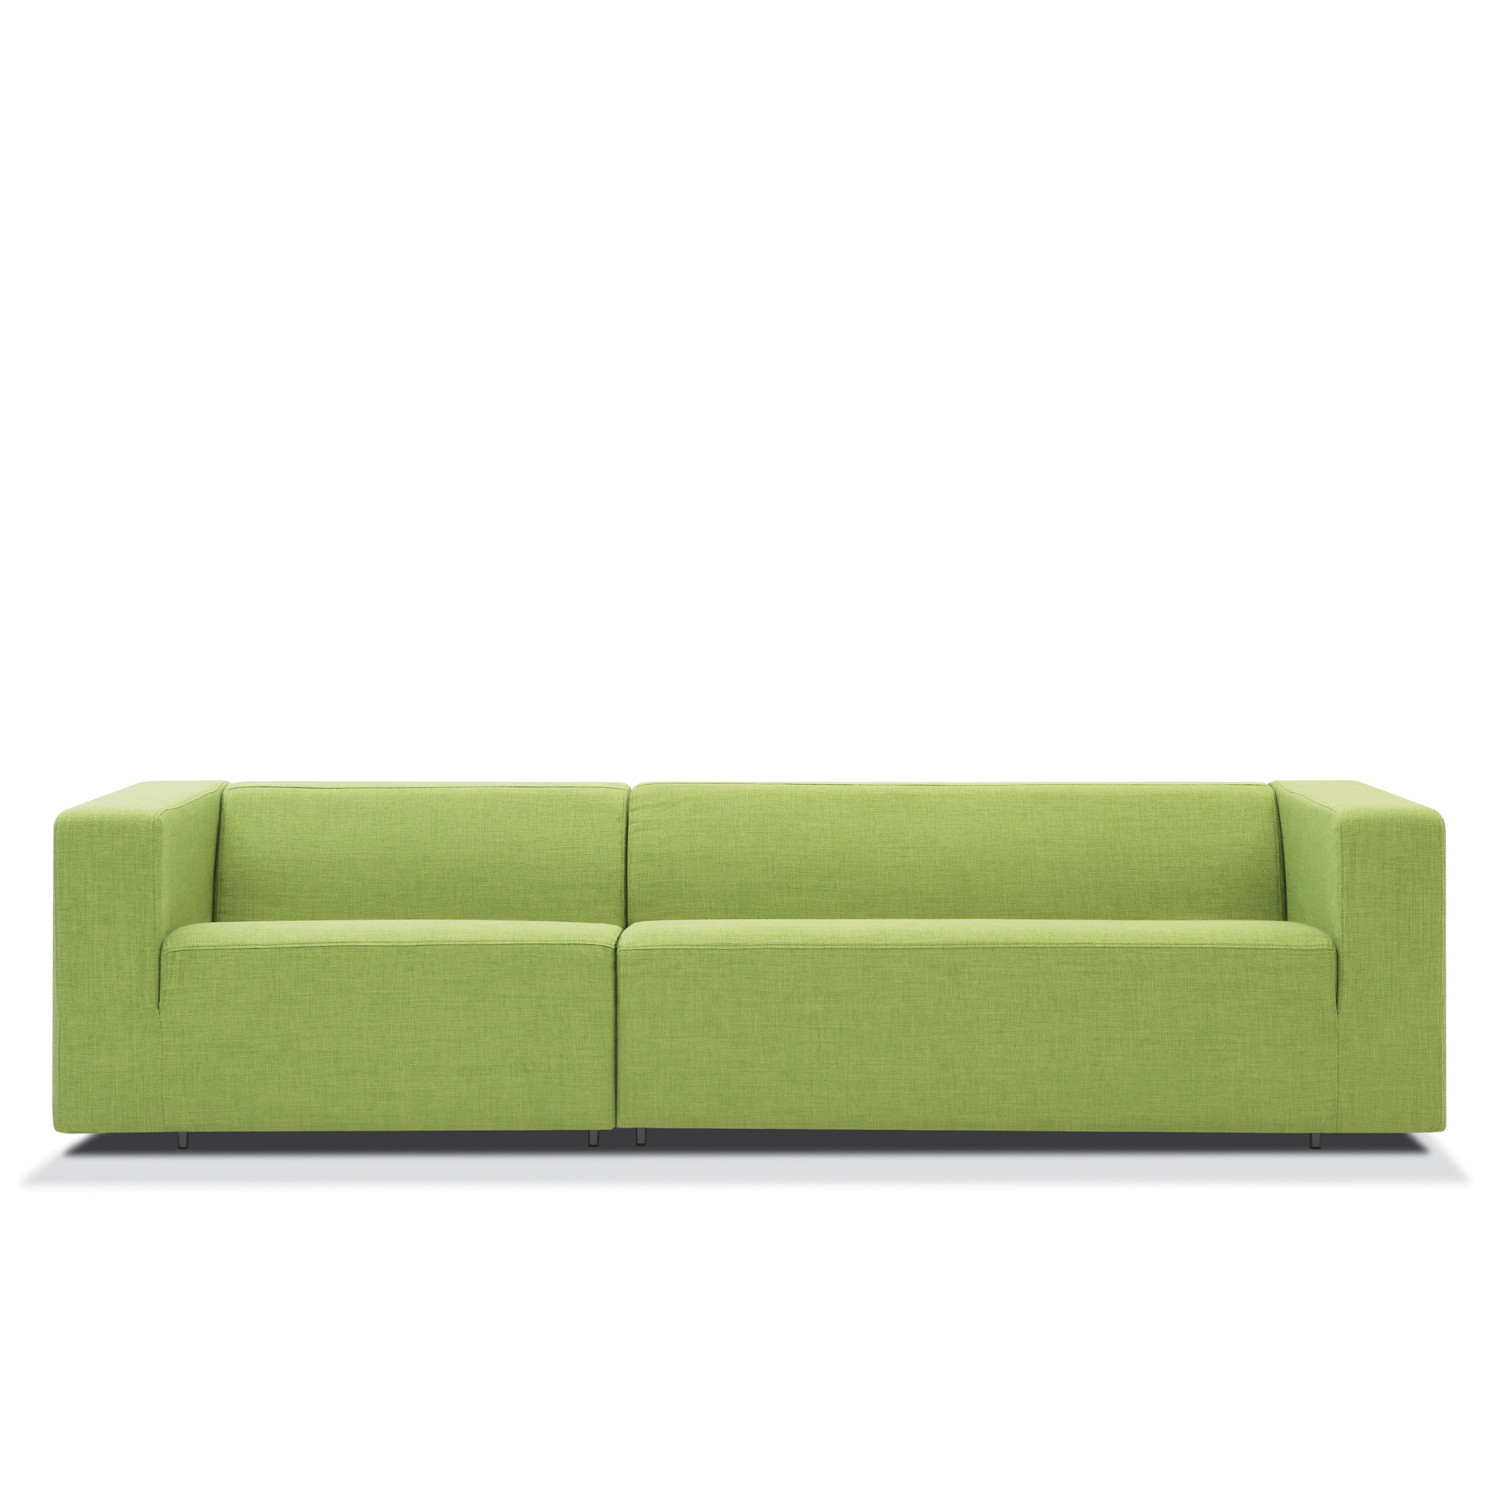 Float Sofas by Offecct